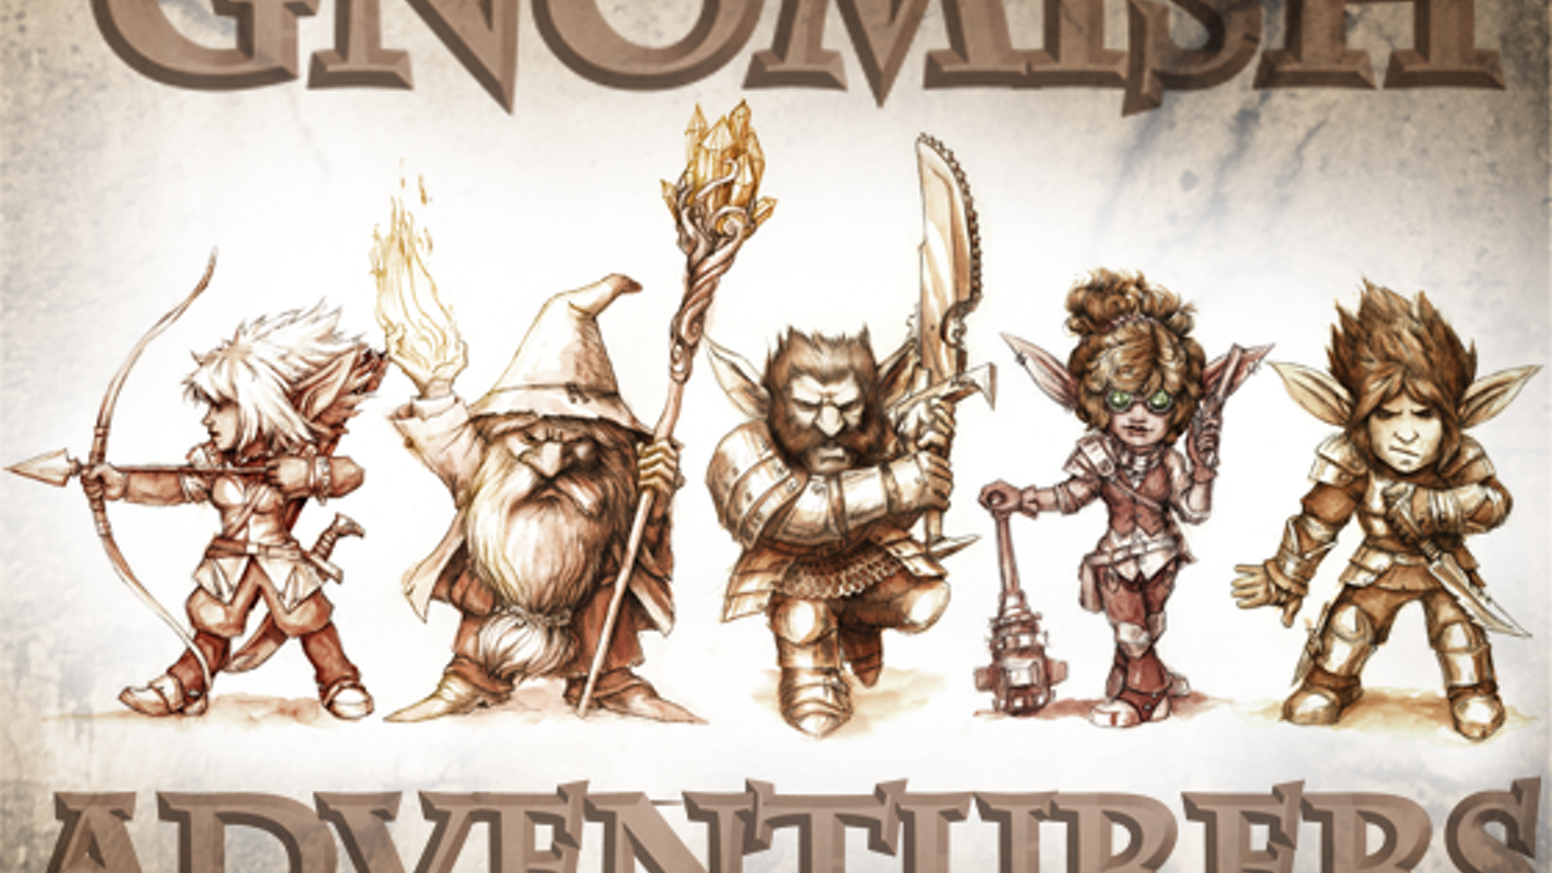 Gnomish Adventurers Box Set by Stonehaven Miniatures